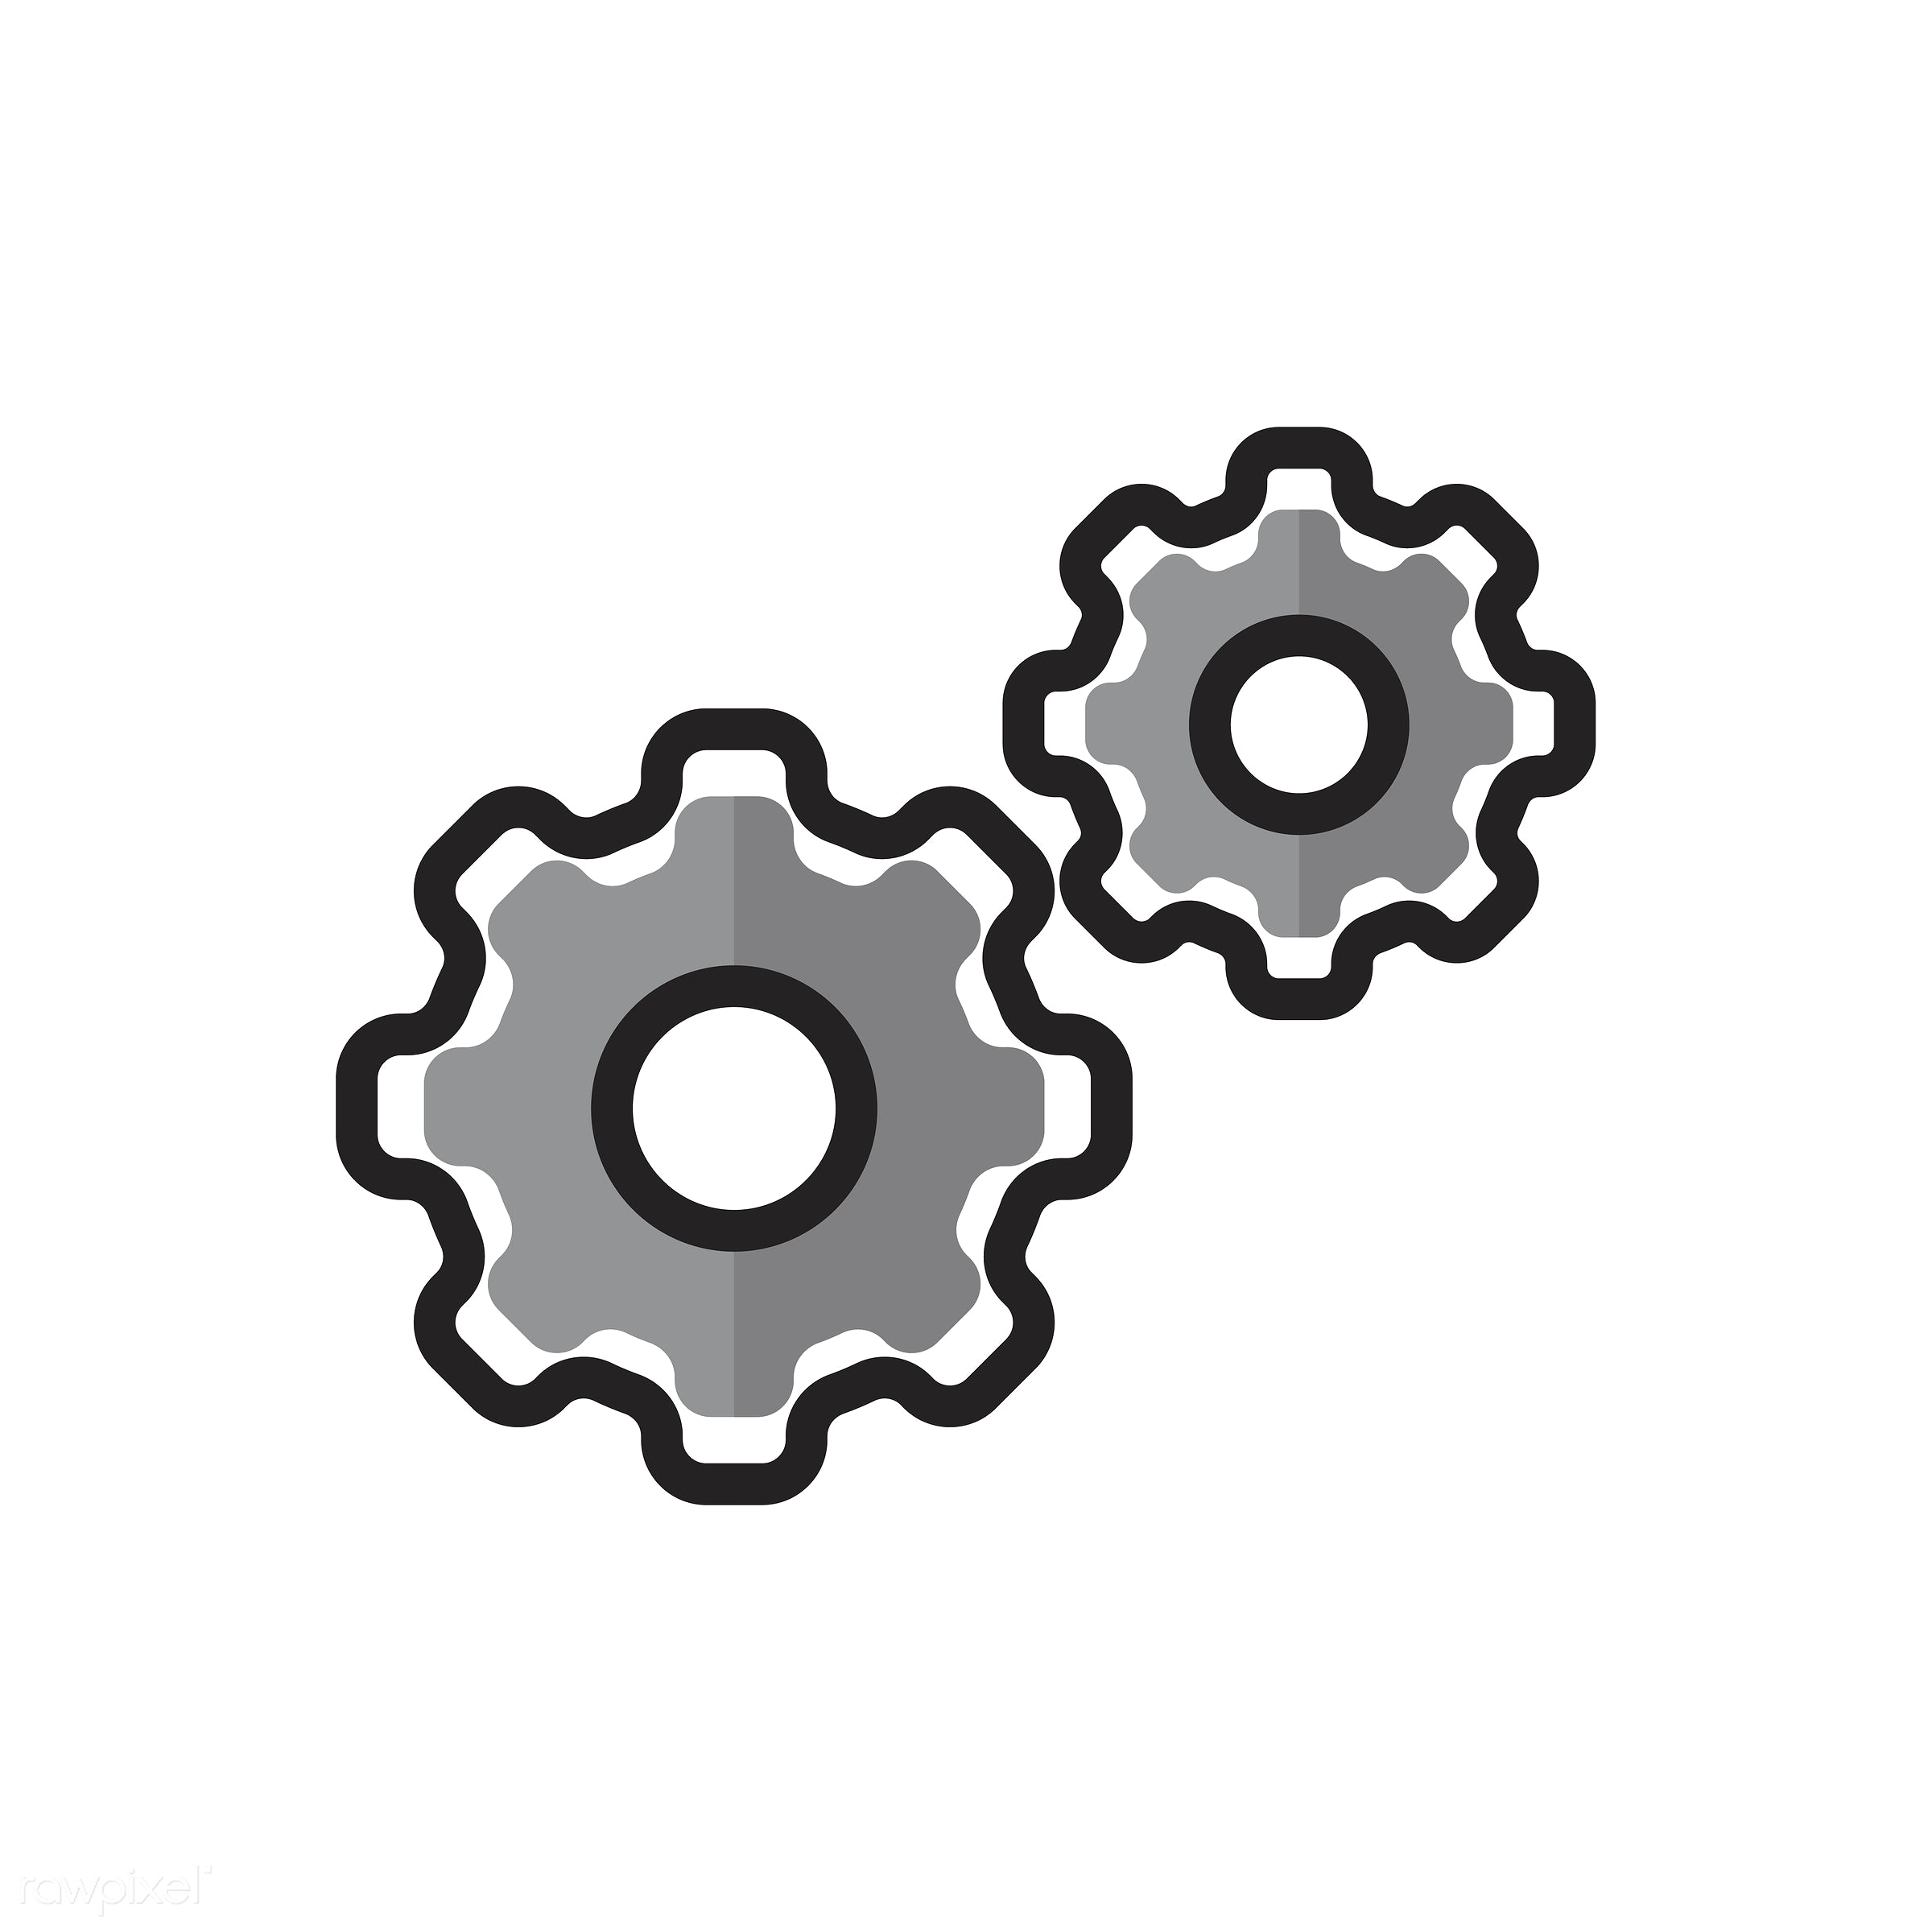 Illustration of config gears - biology, chemistry, class, collaboration, config, cooperation, design, education, equipment,...